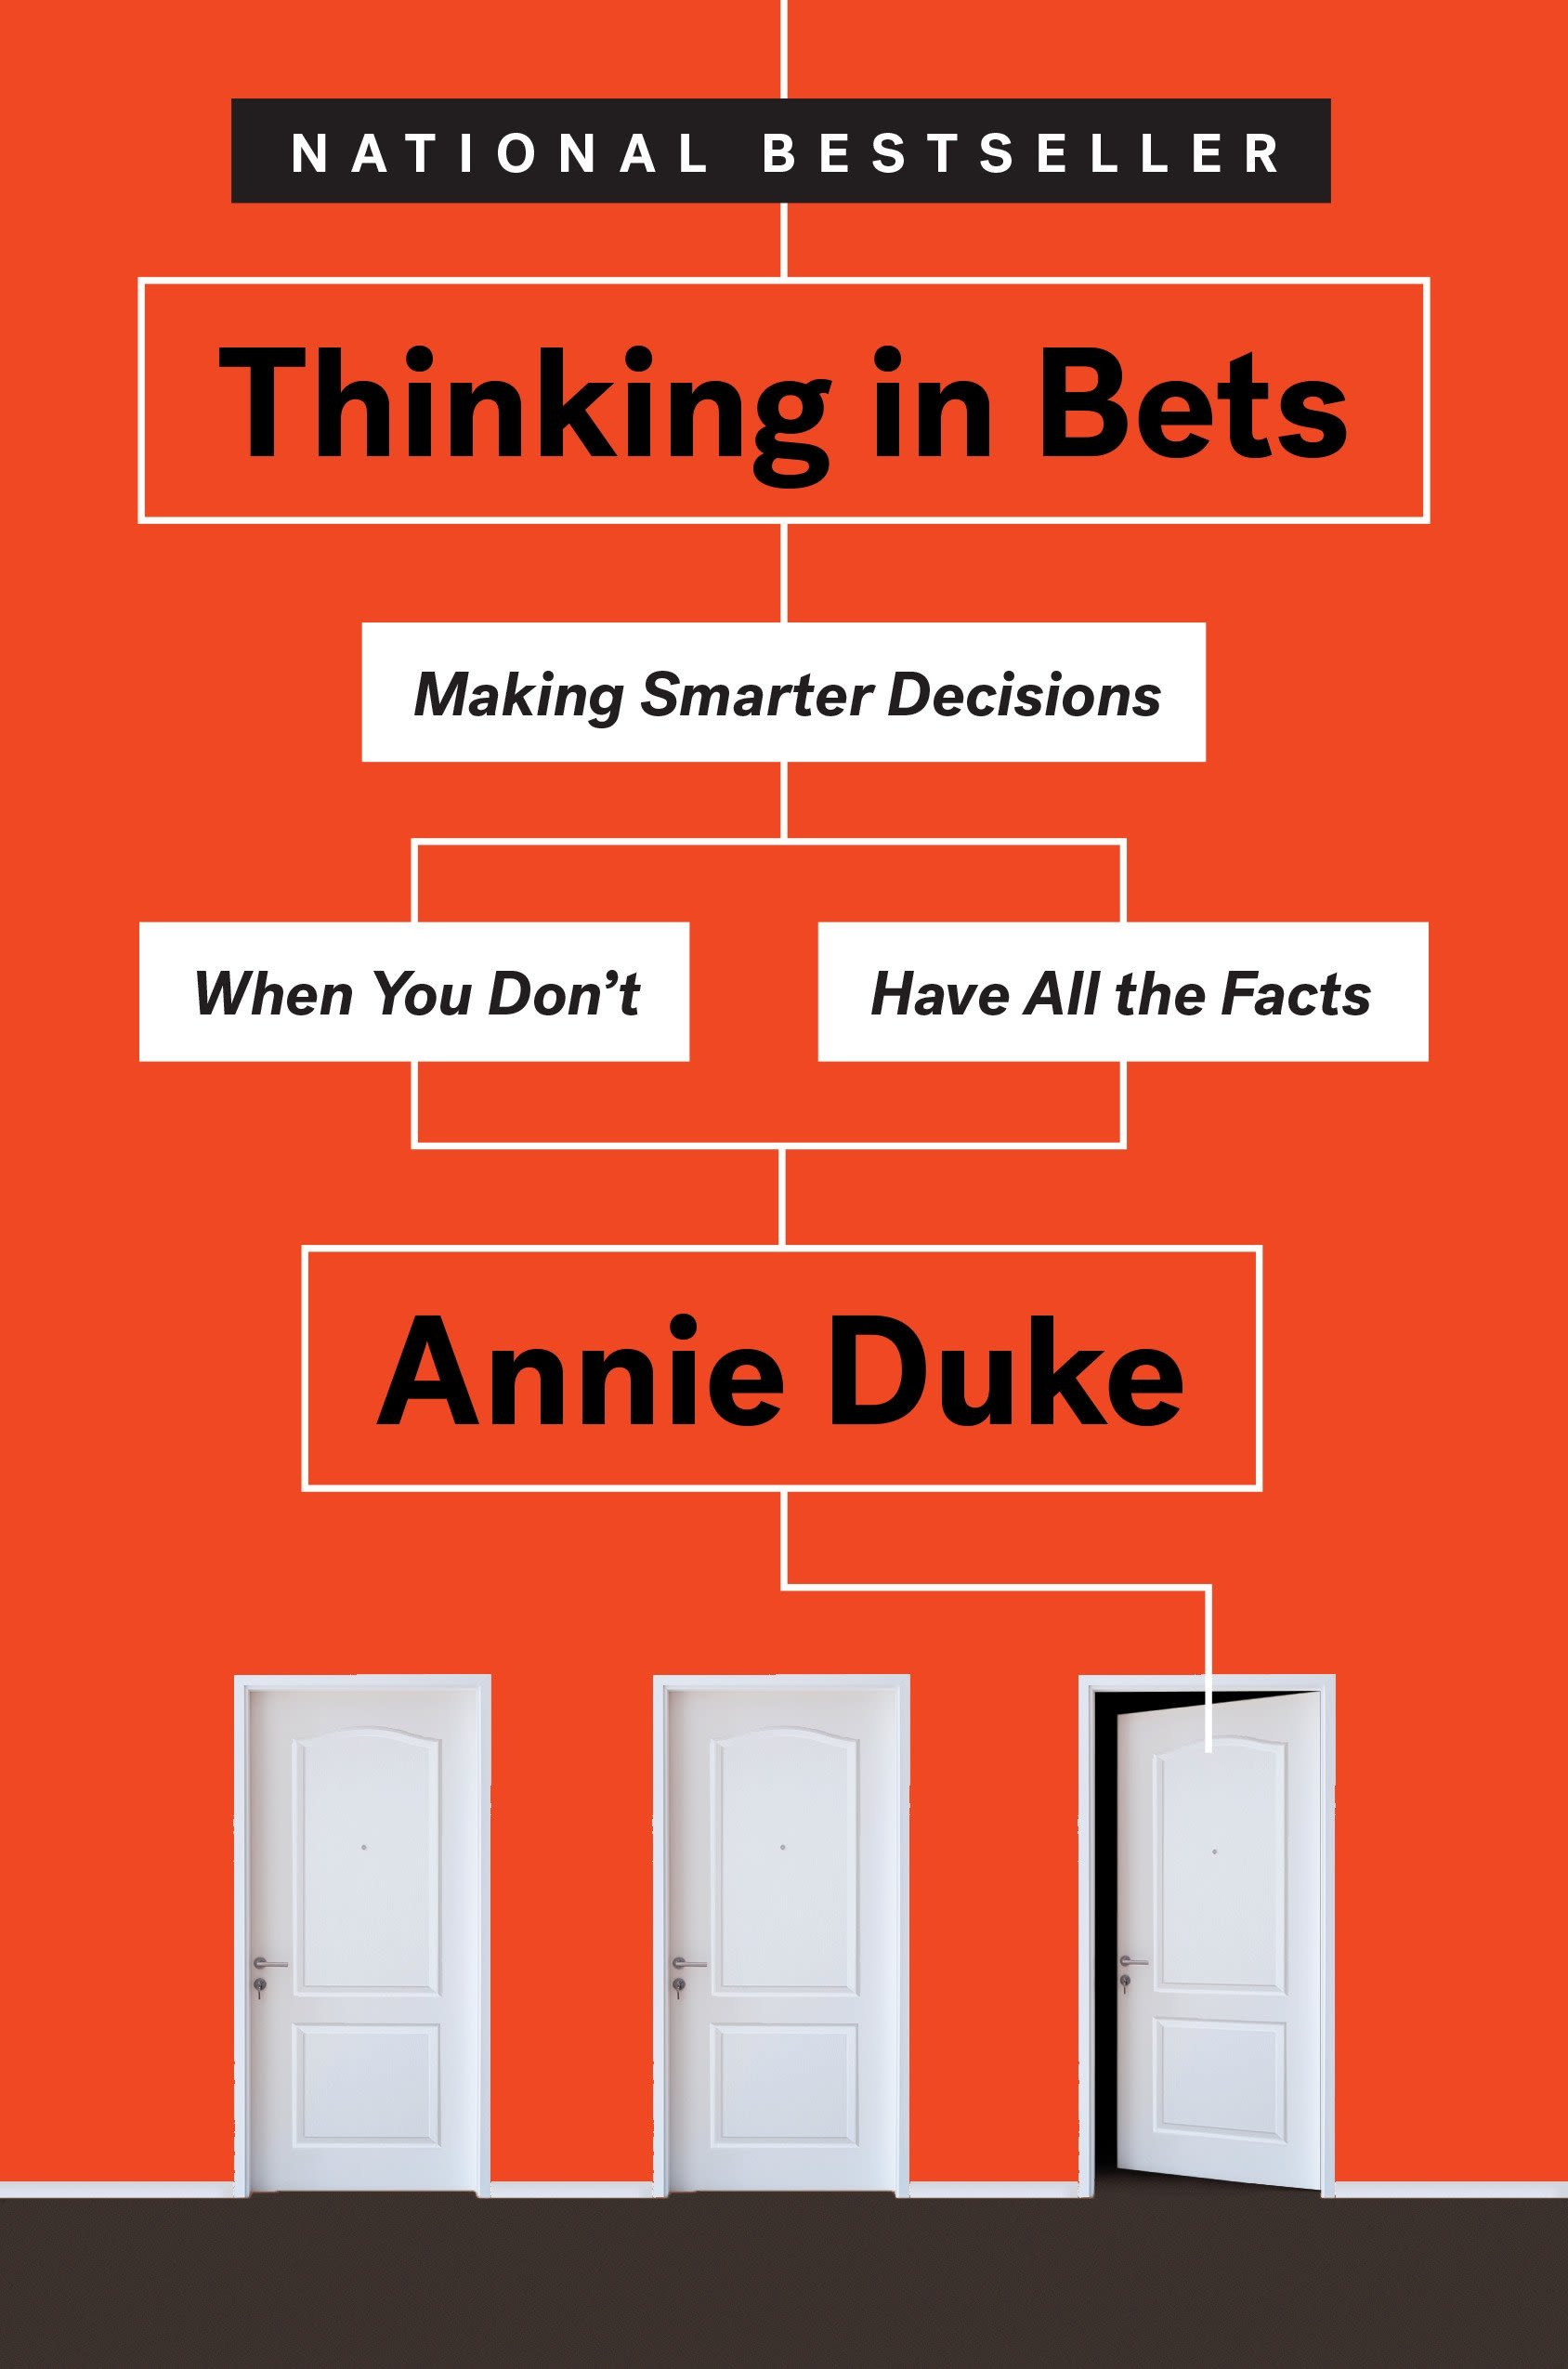 One time use: Book Cover thinking in bets